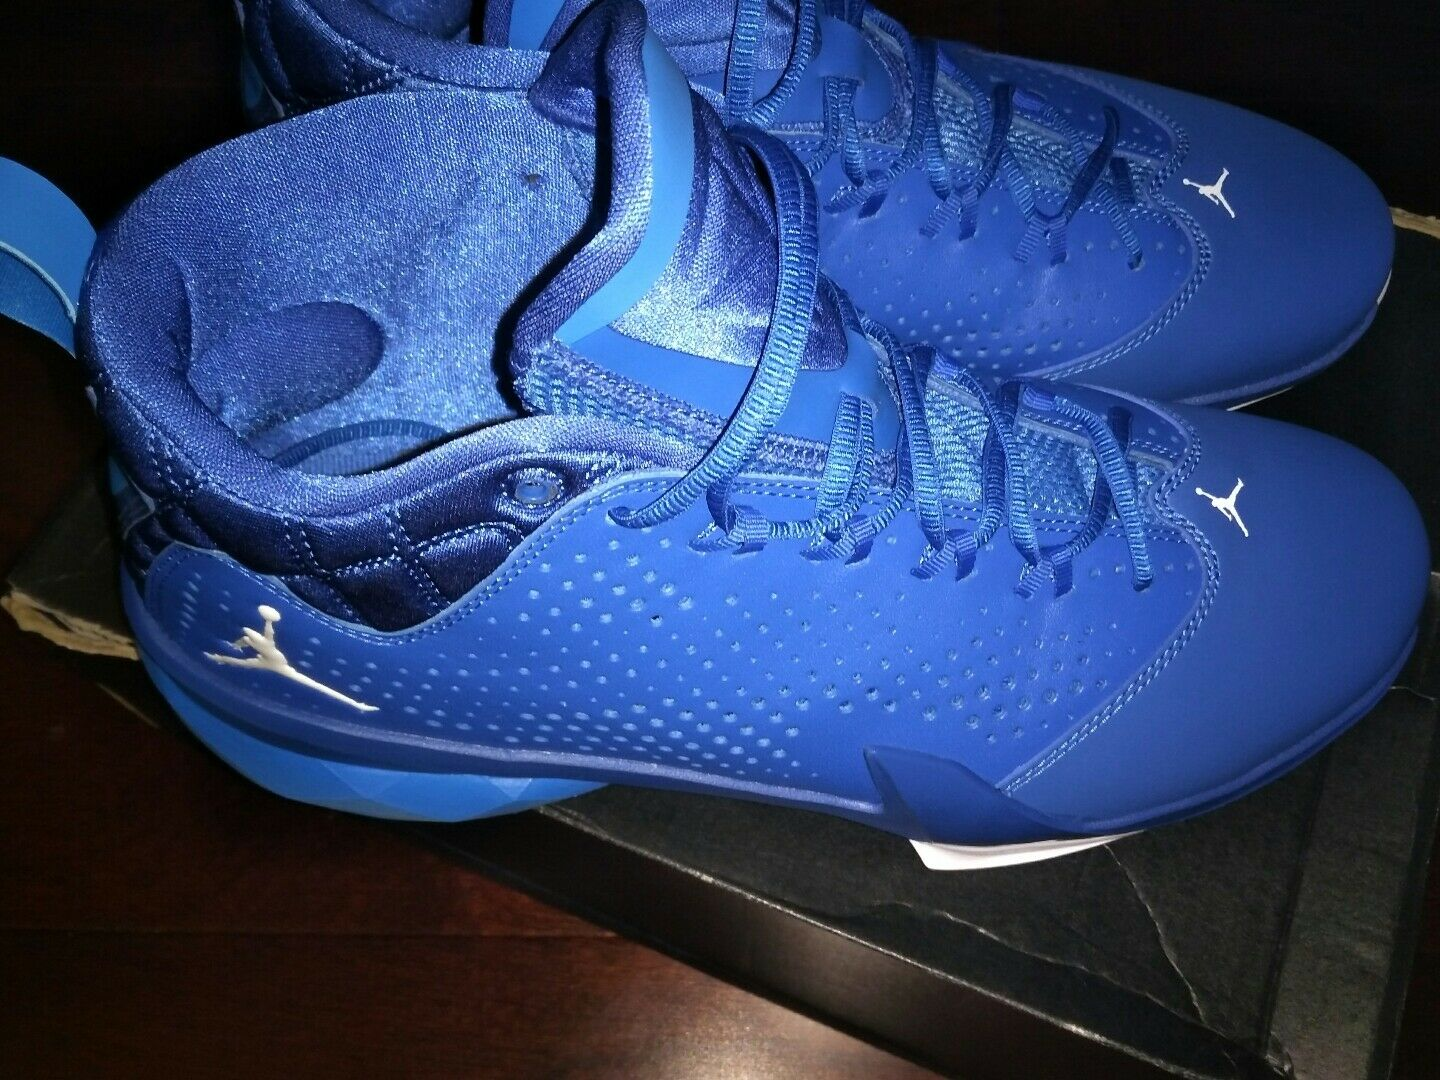 BRAND NEW.... Men's size 11 Jordan Flight